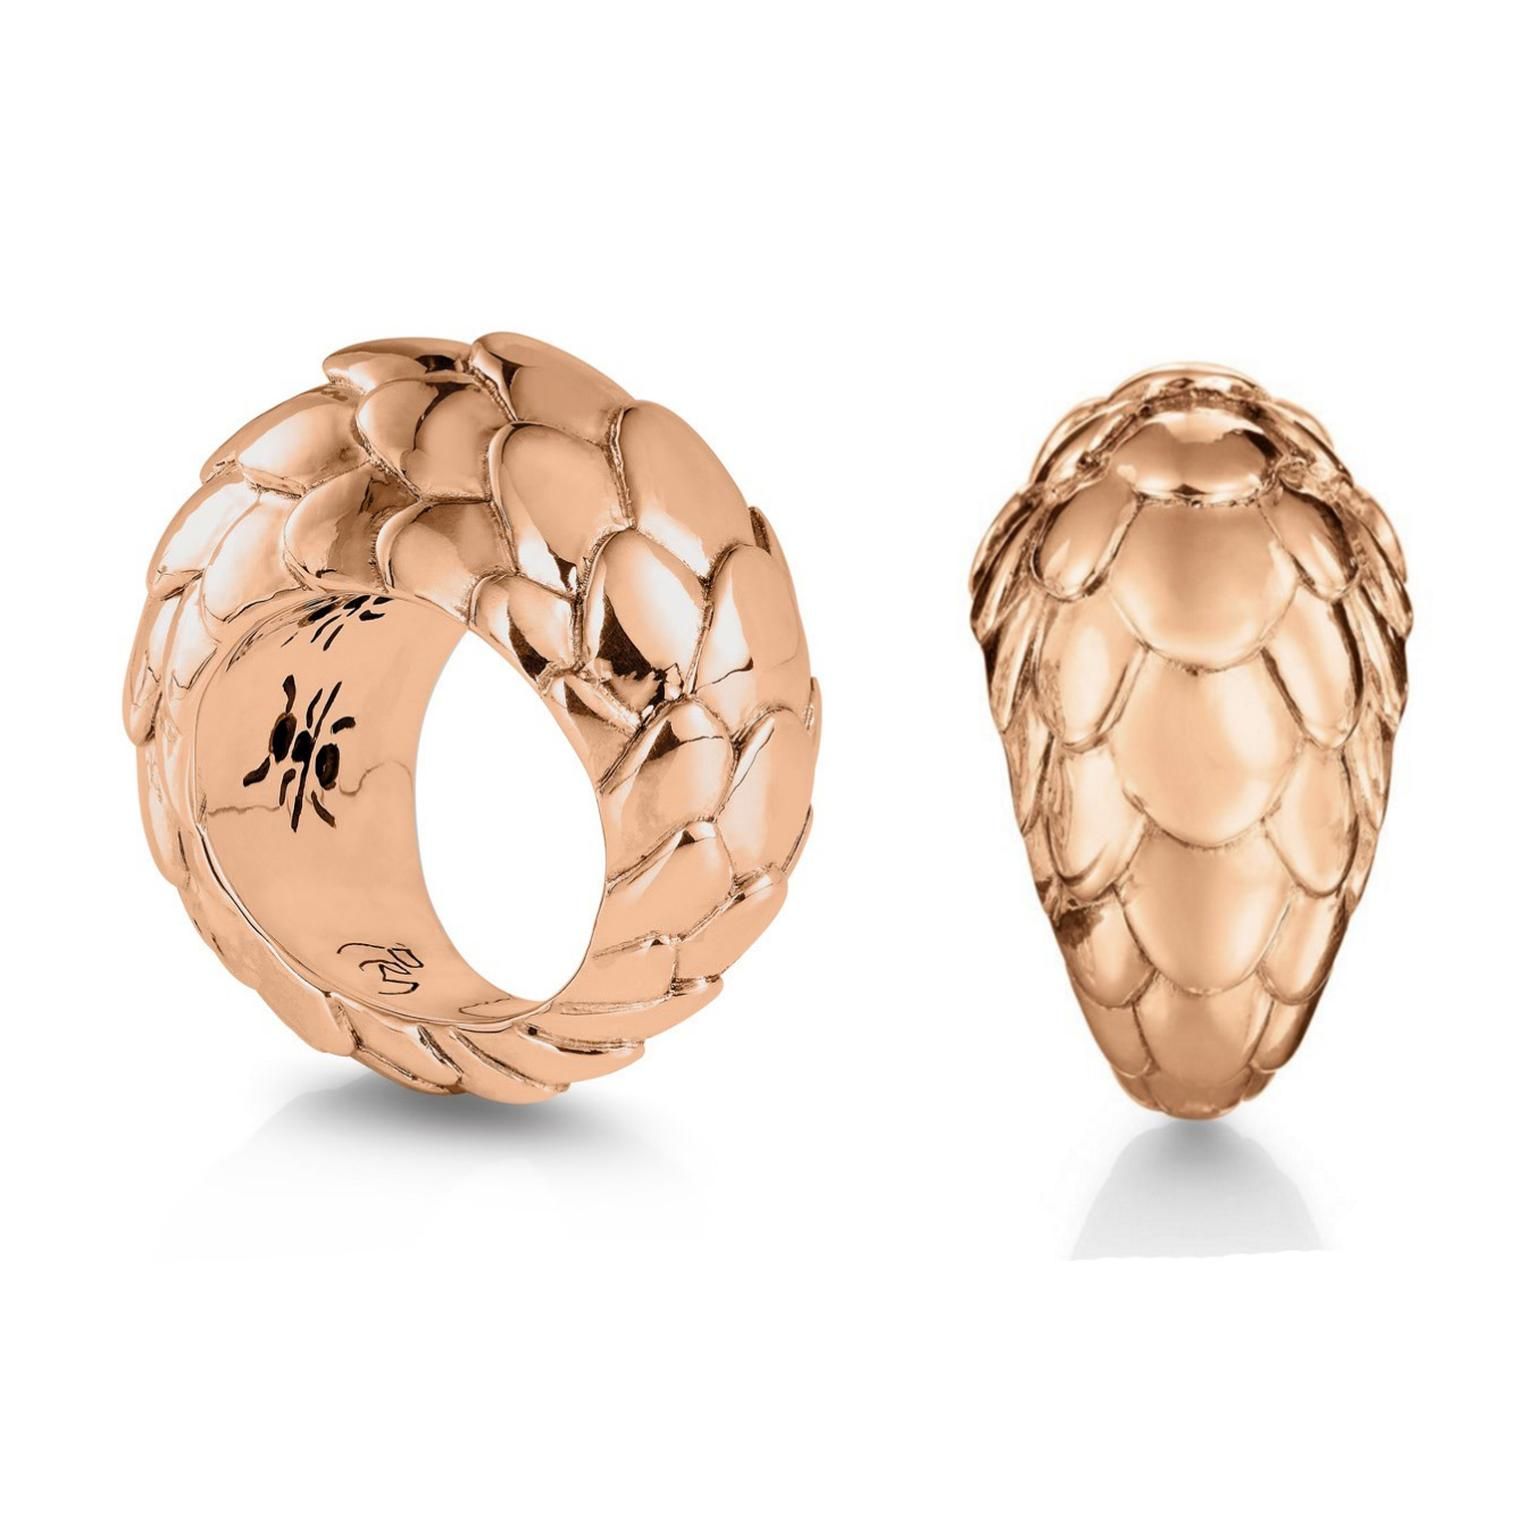 Patrick Mavros Pangolin rose gold ring